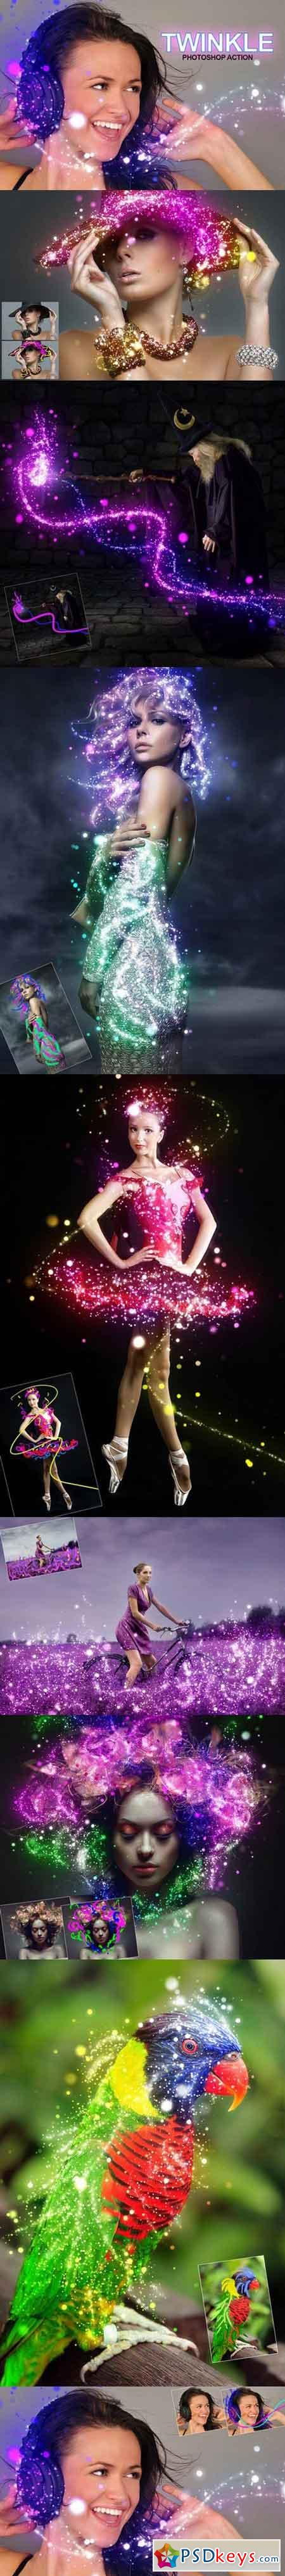 Twinkle Photoshop Action 859656